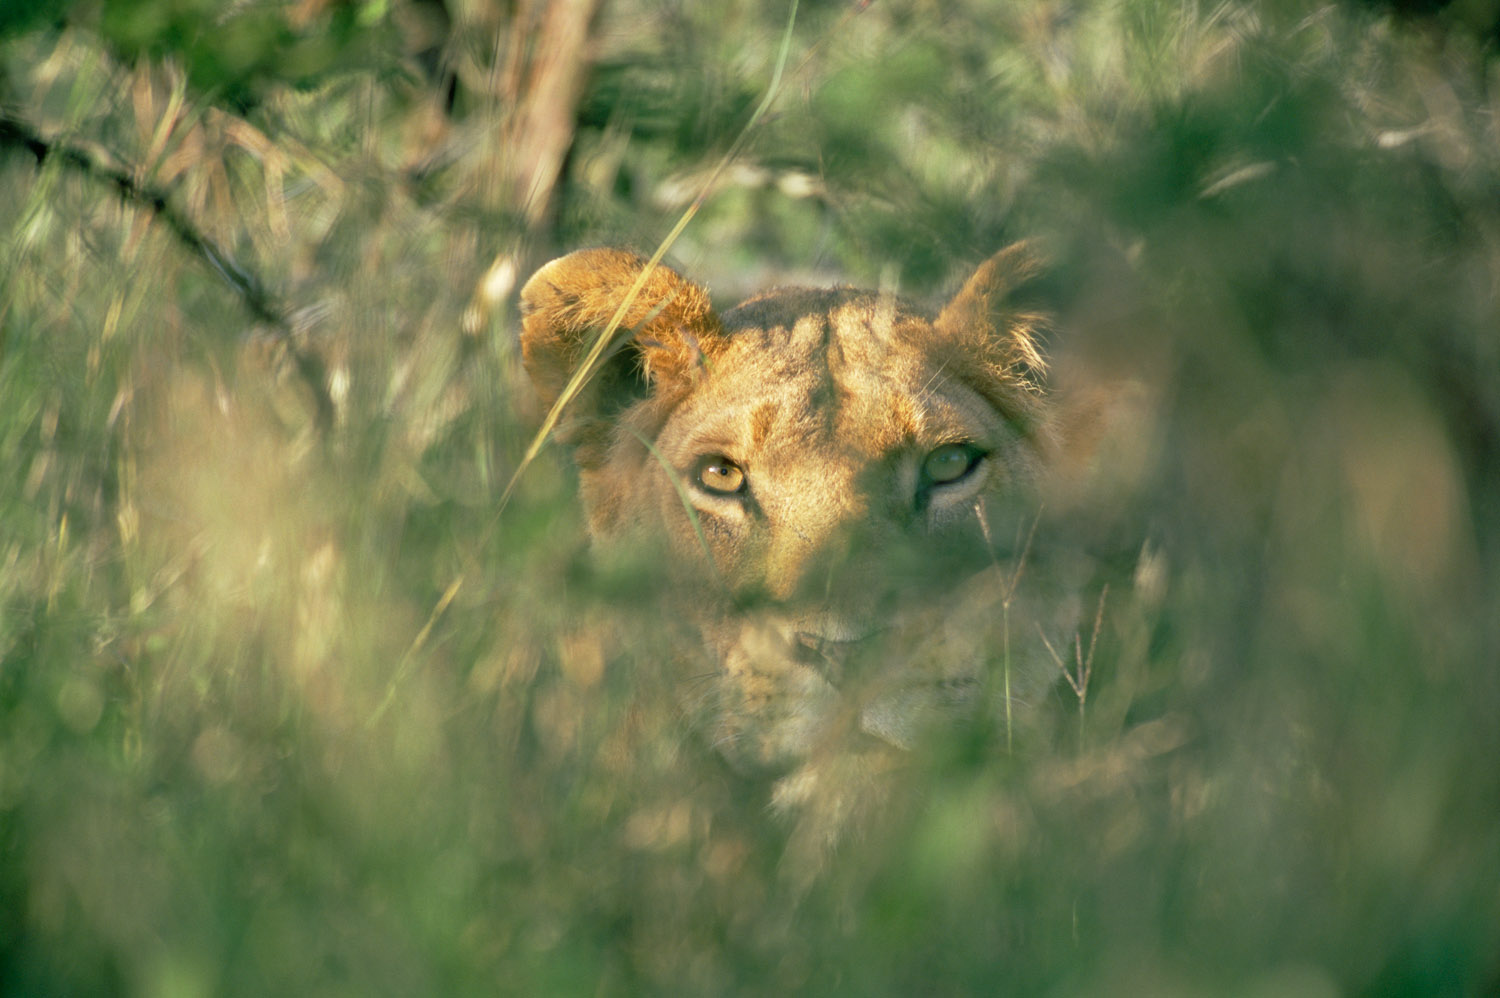 Lioness staring through foliage, Laikipia, Kenya